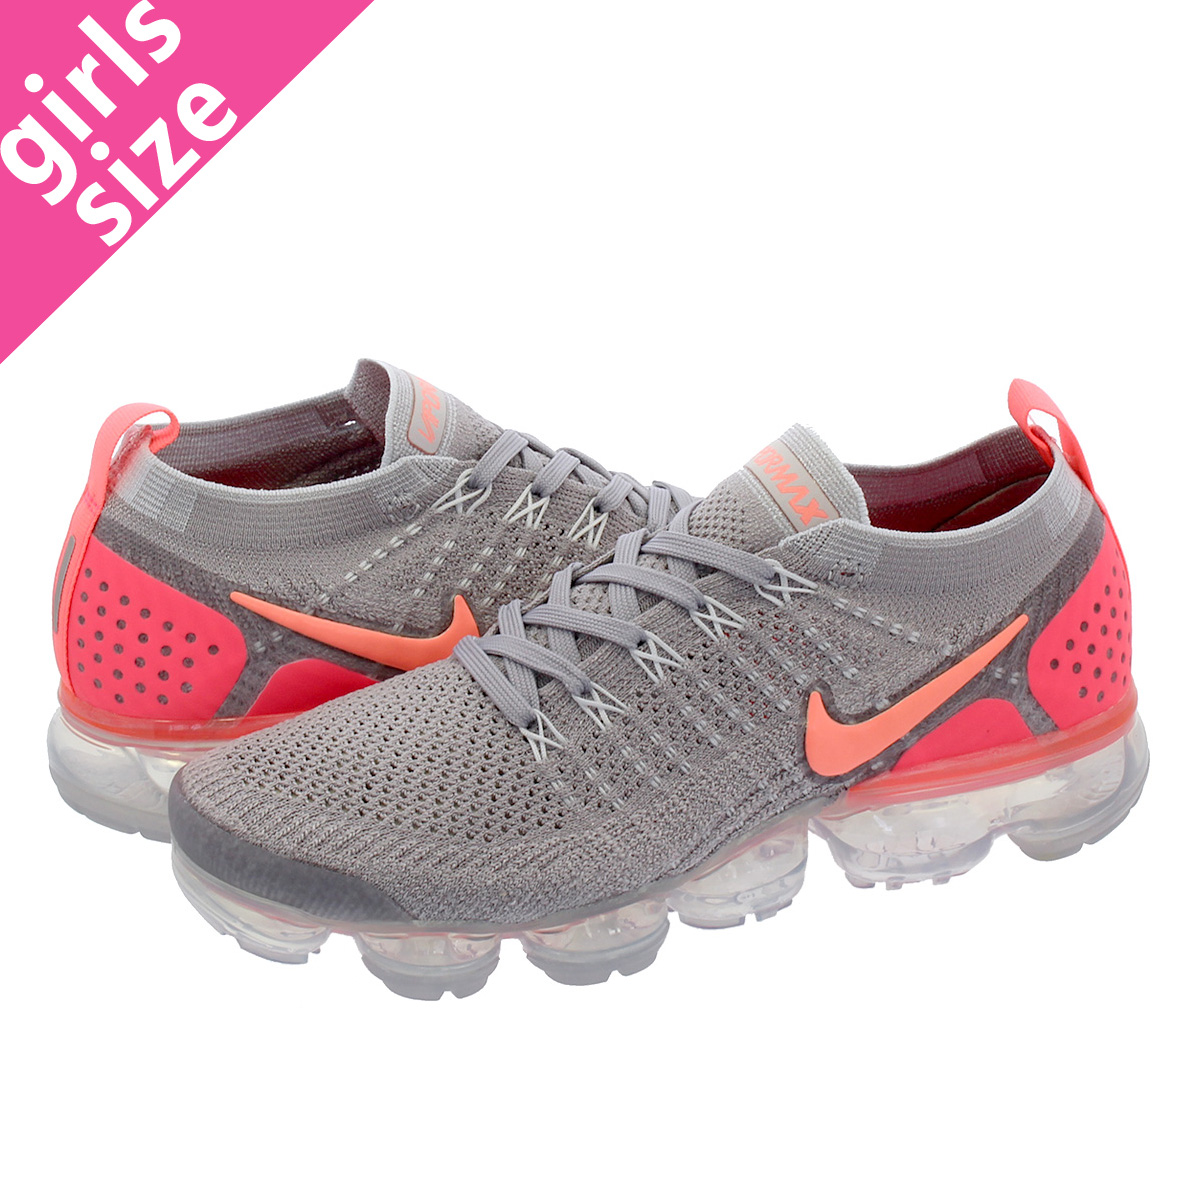 1f573b26a68 NIKE WMNS AIR VAPORMAX FLYKNIT 2 Nike women vapor max fried food knit ATMOSPHERE  GREY CRIMSON PULSE 942